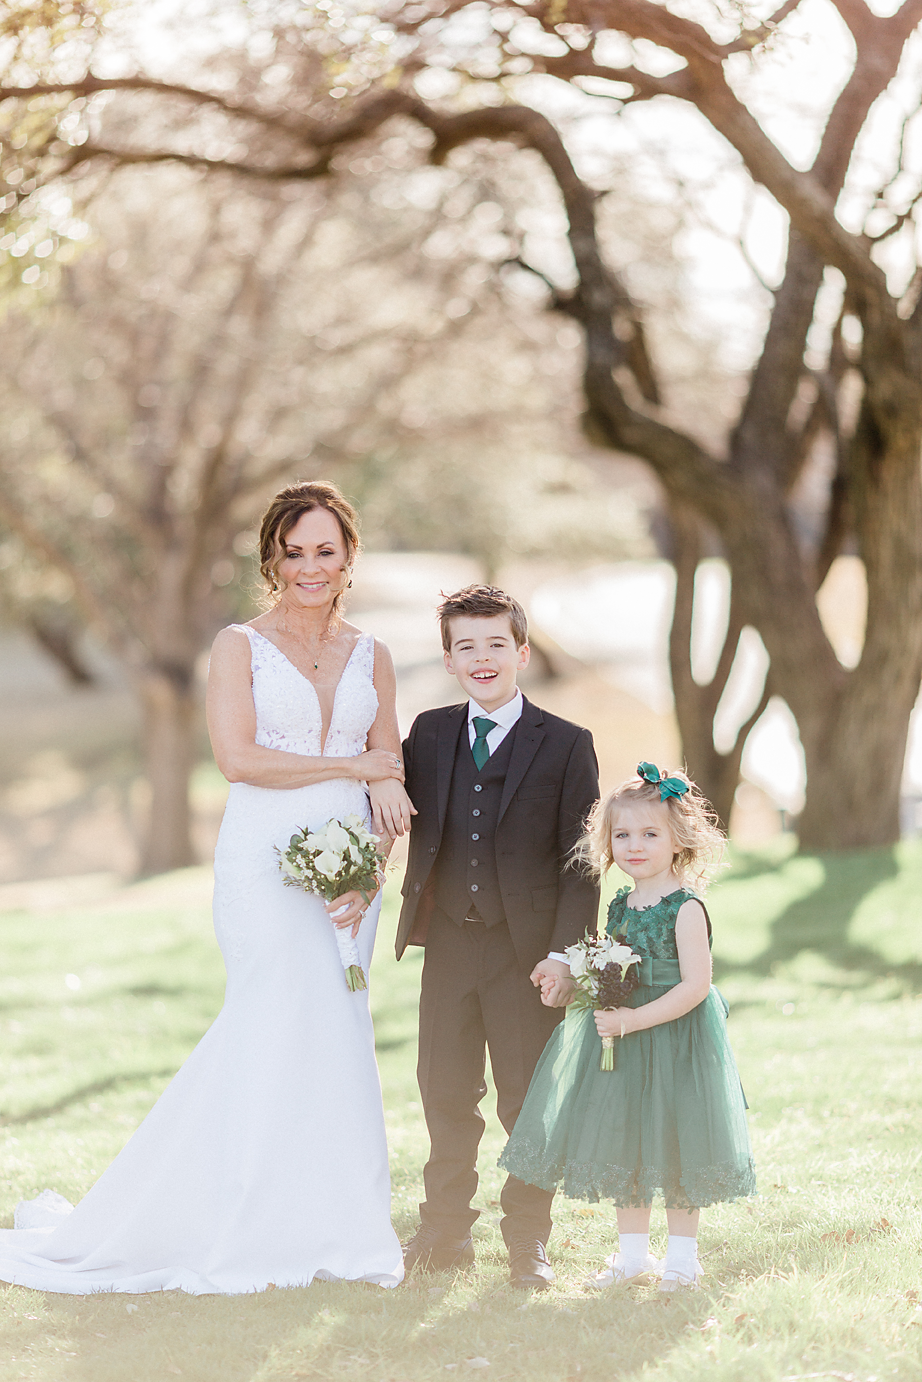 Dallas Wedding photographer Las Colinas Country Club bride ring bearer flower girl Kate Marie Portraiture.png